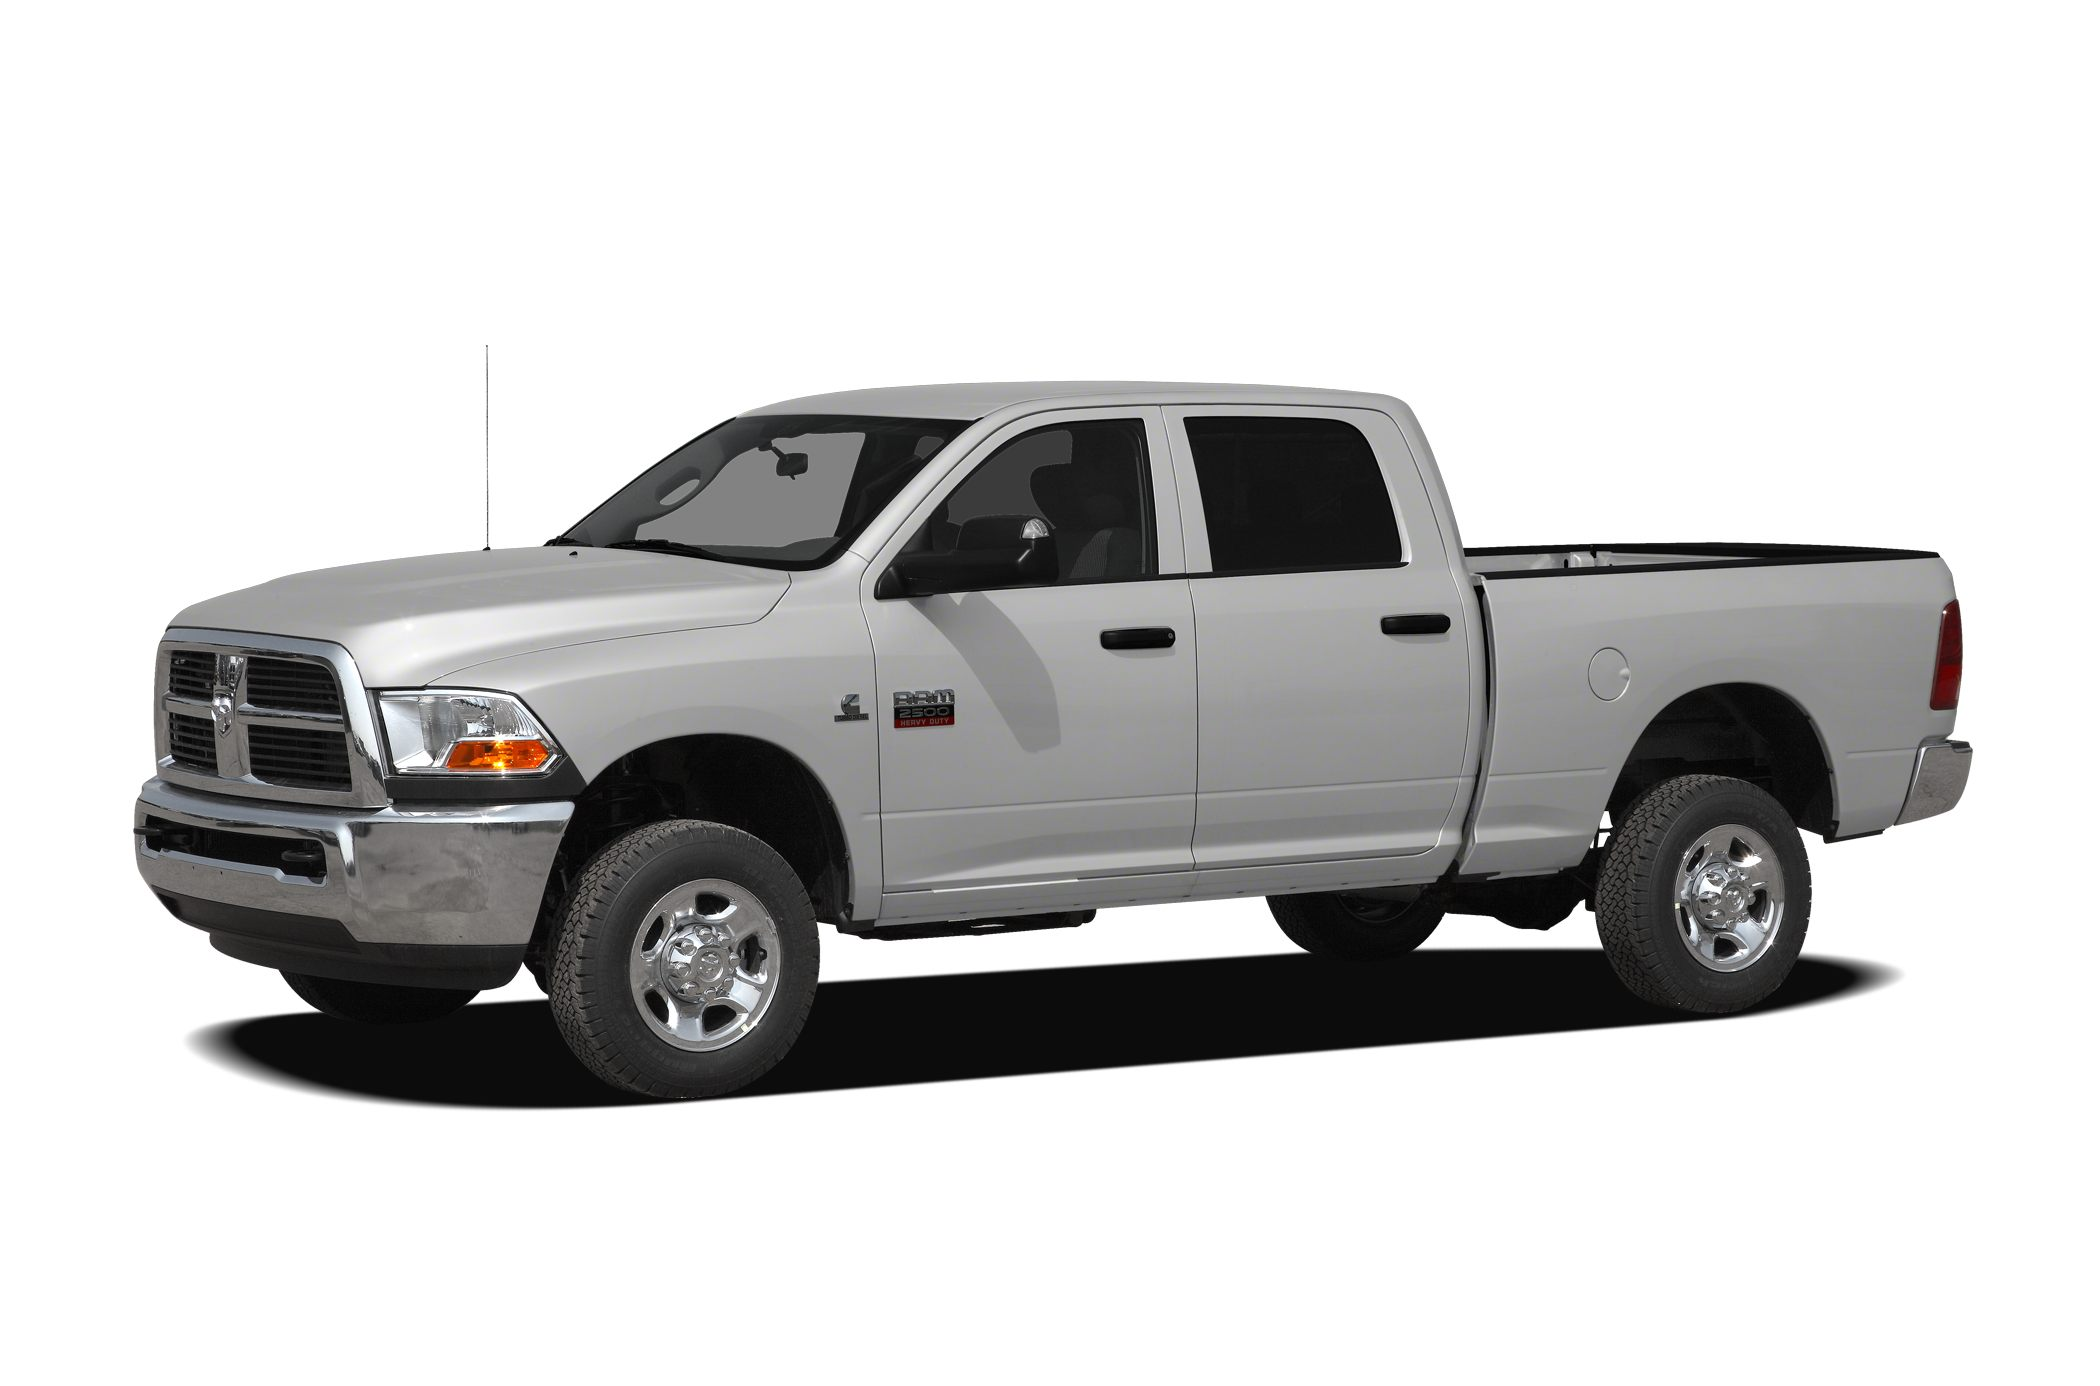 2010 Dodge Ram 2500 Laramie Check out this gently-used 2010 Dodge Ram 2500 we recently got inDriv